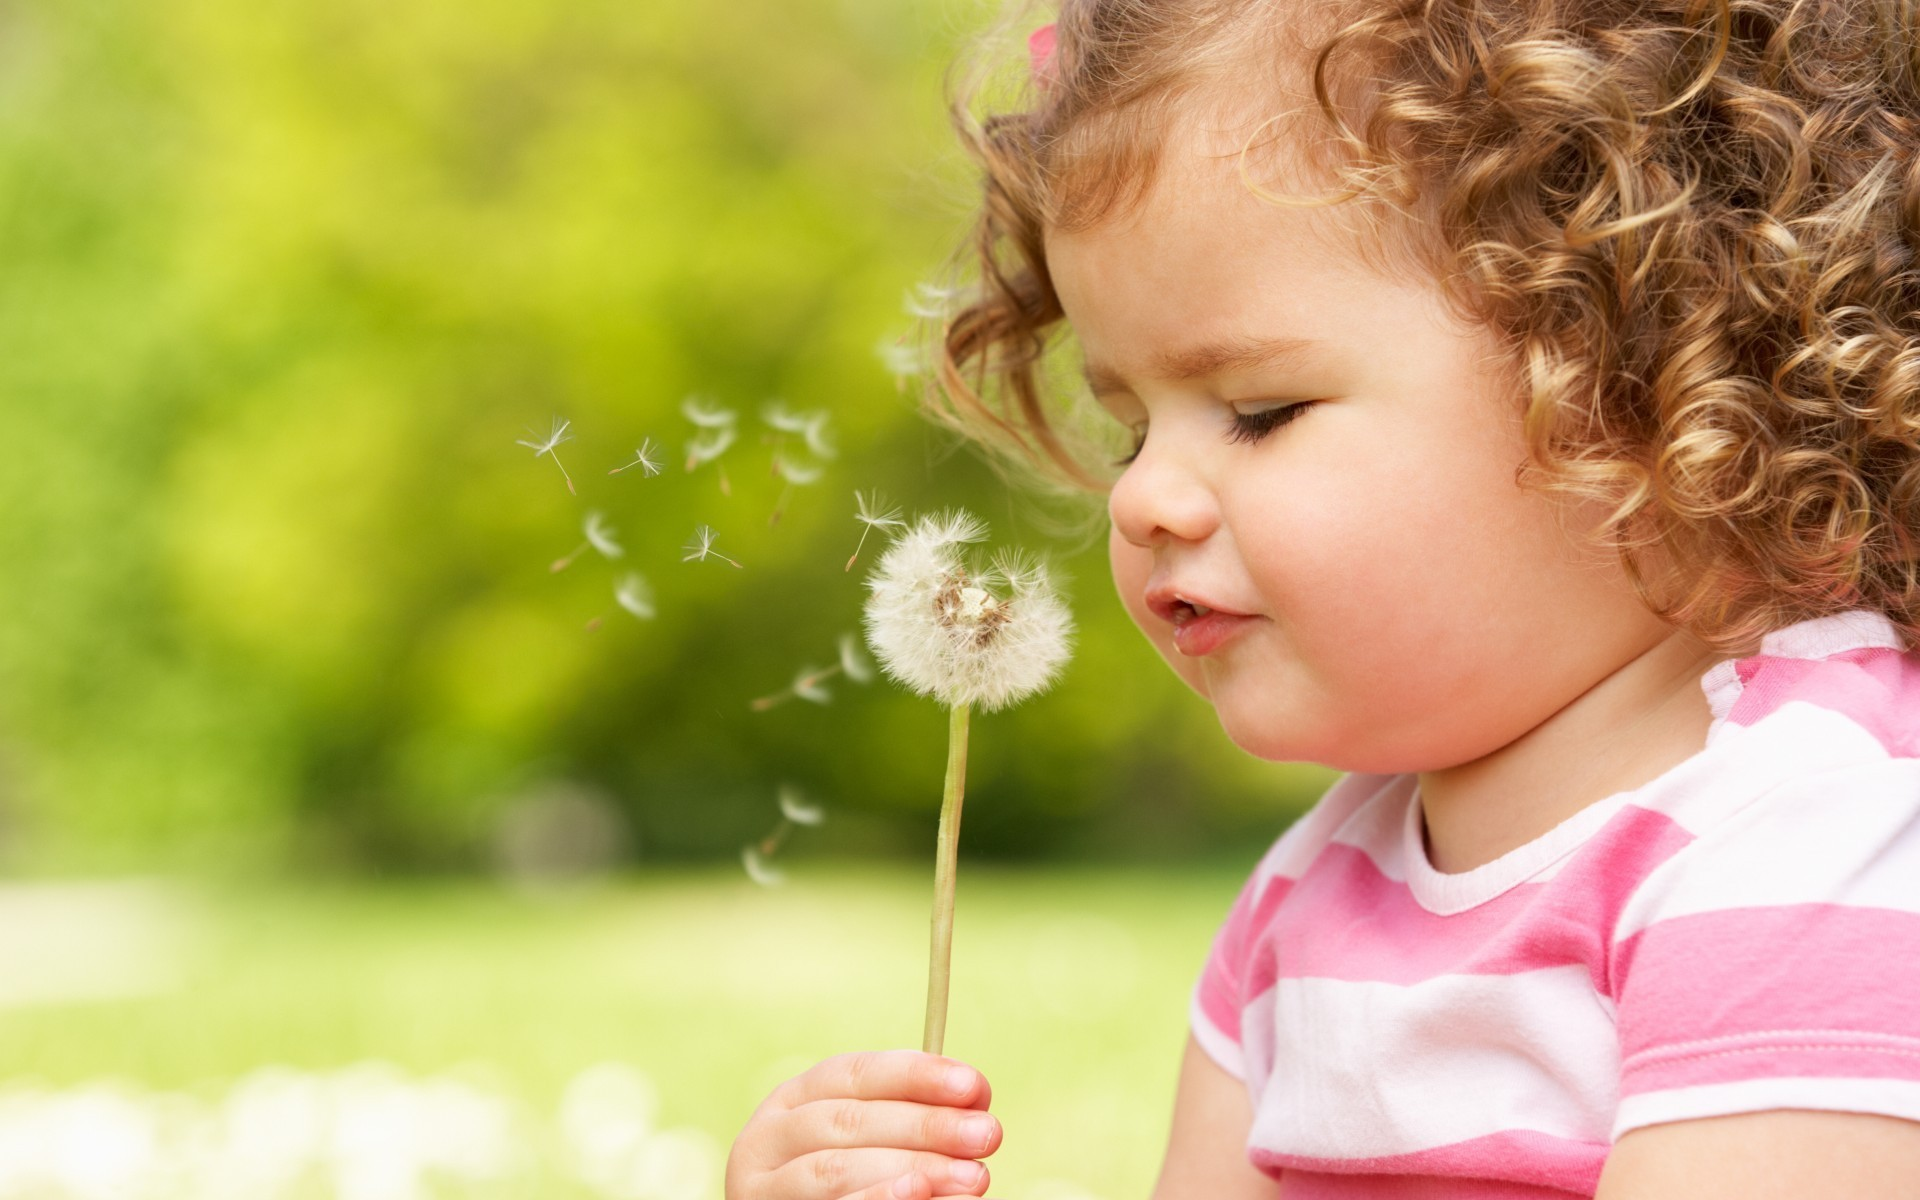 Res: 1920x1200, A Curly Child Blowing a Dandelion